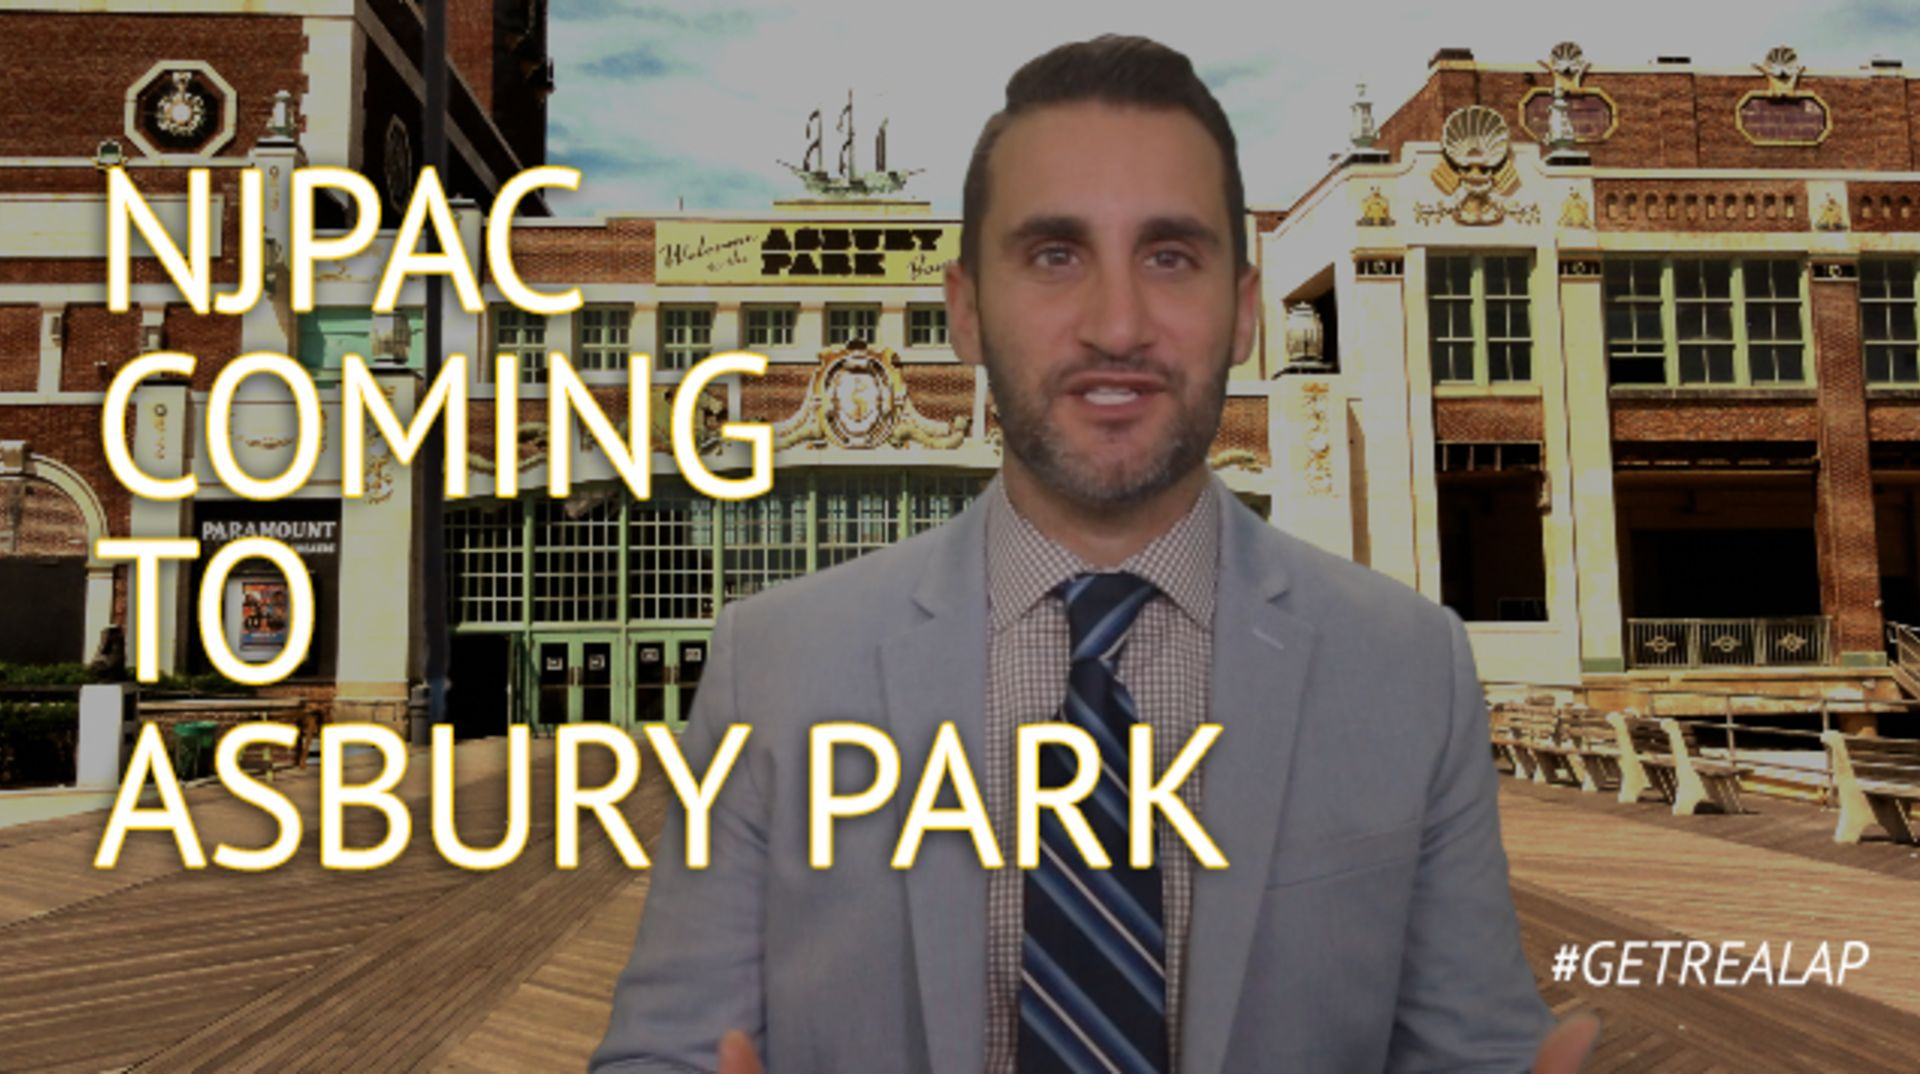 NJPAC is coming to Asbury Park